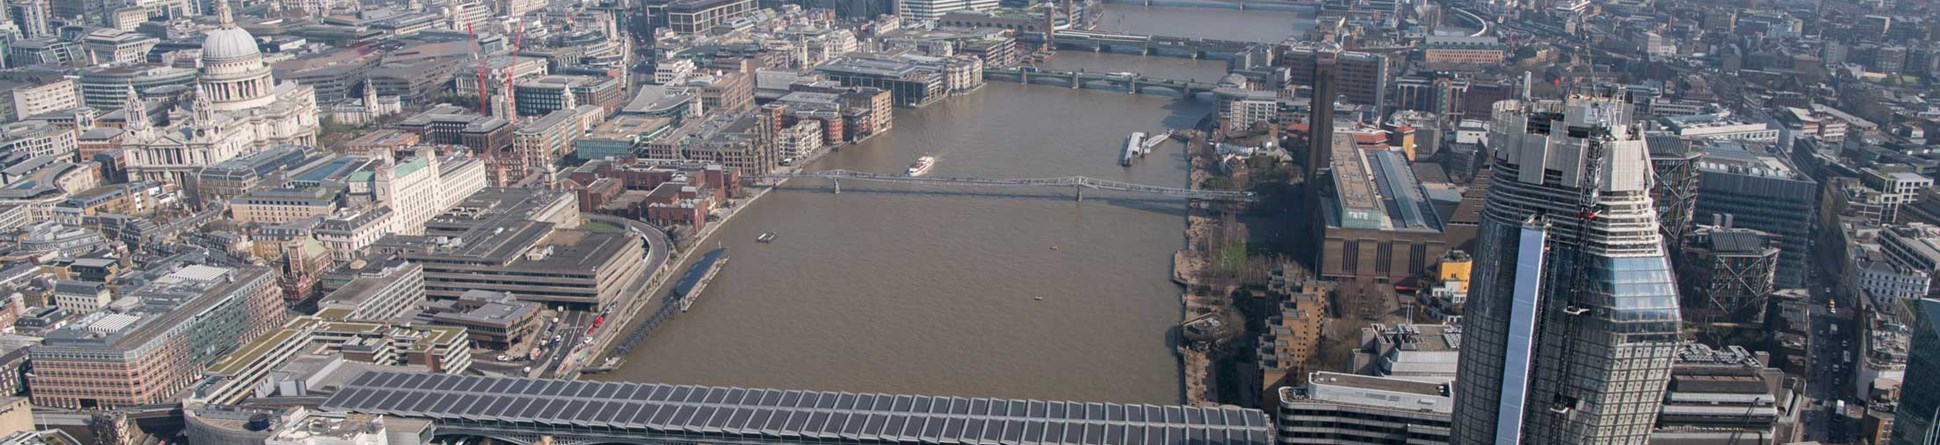 An areal view of central London along the Thames including St Pauls.